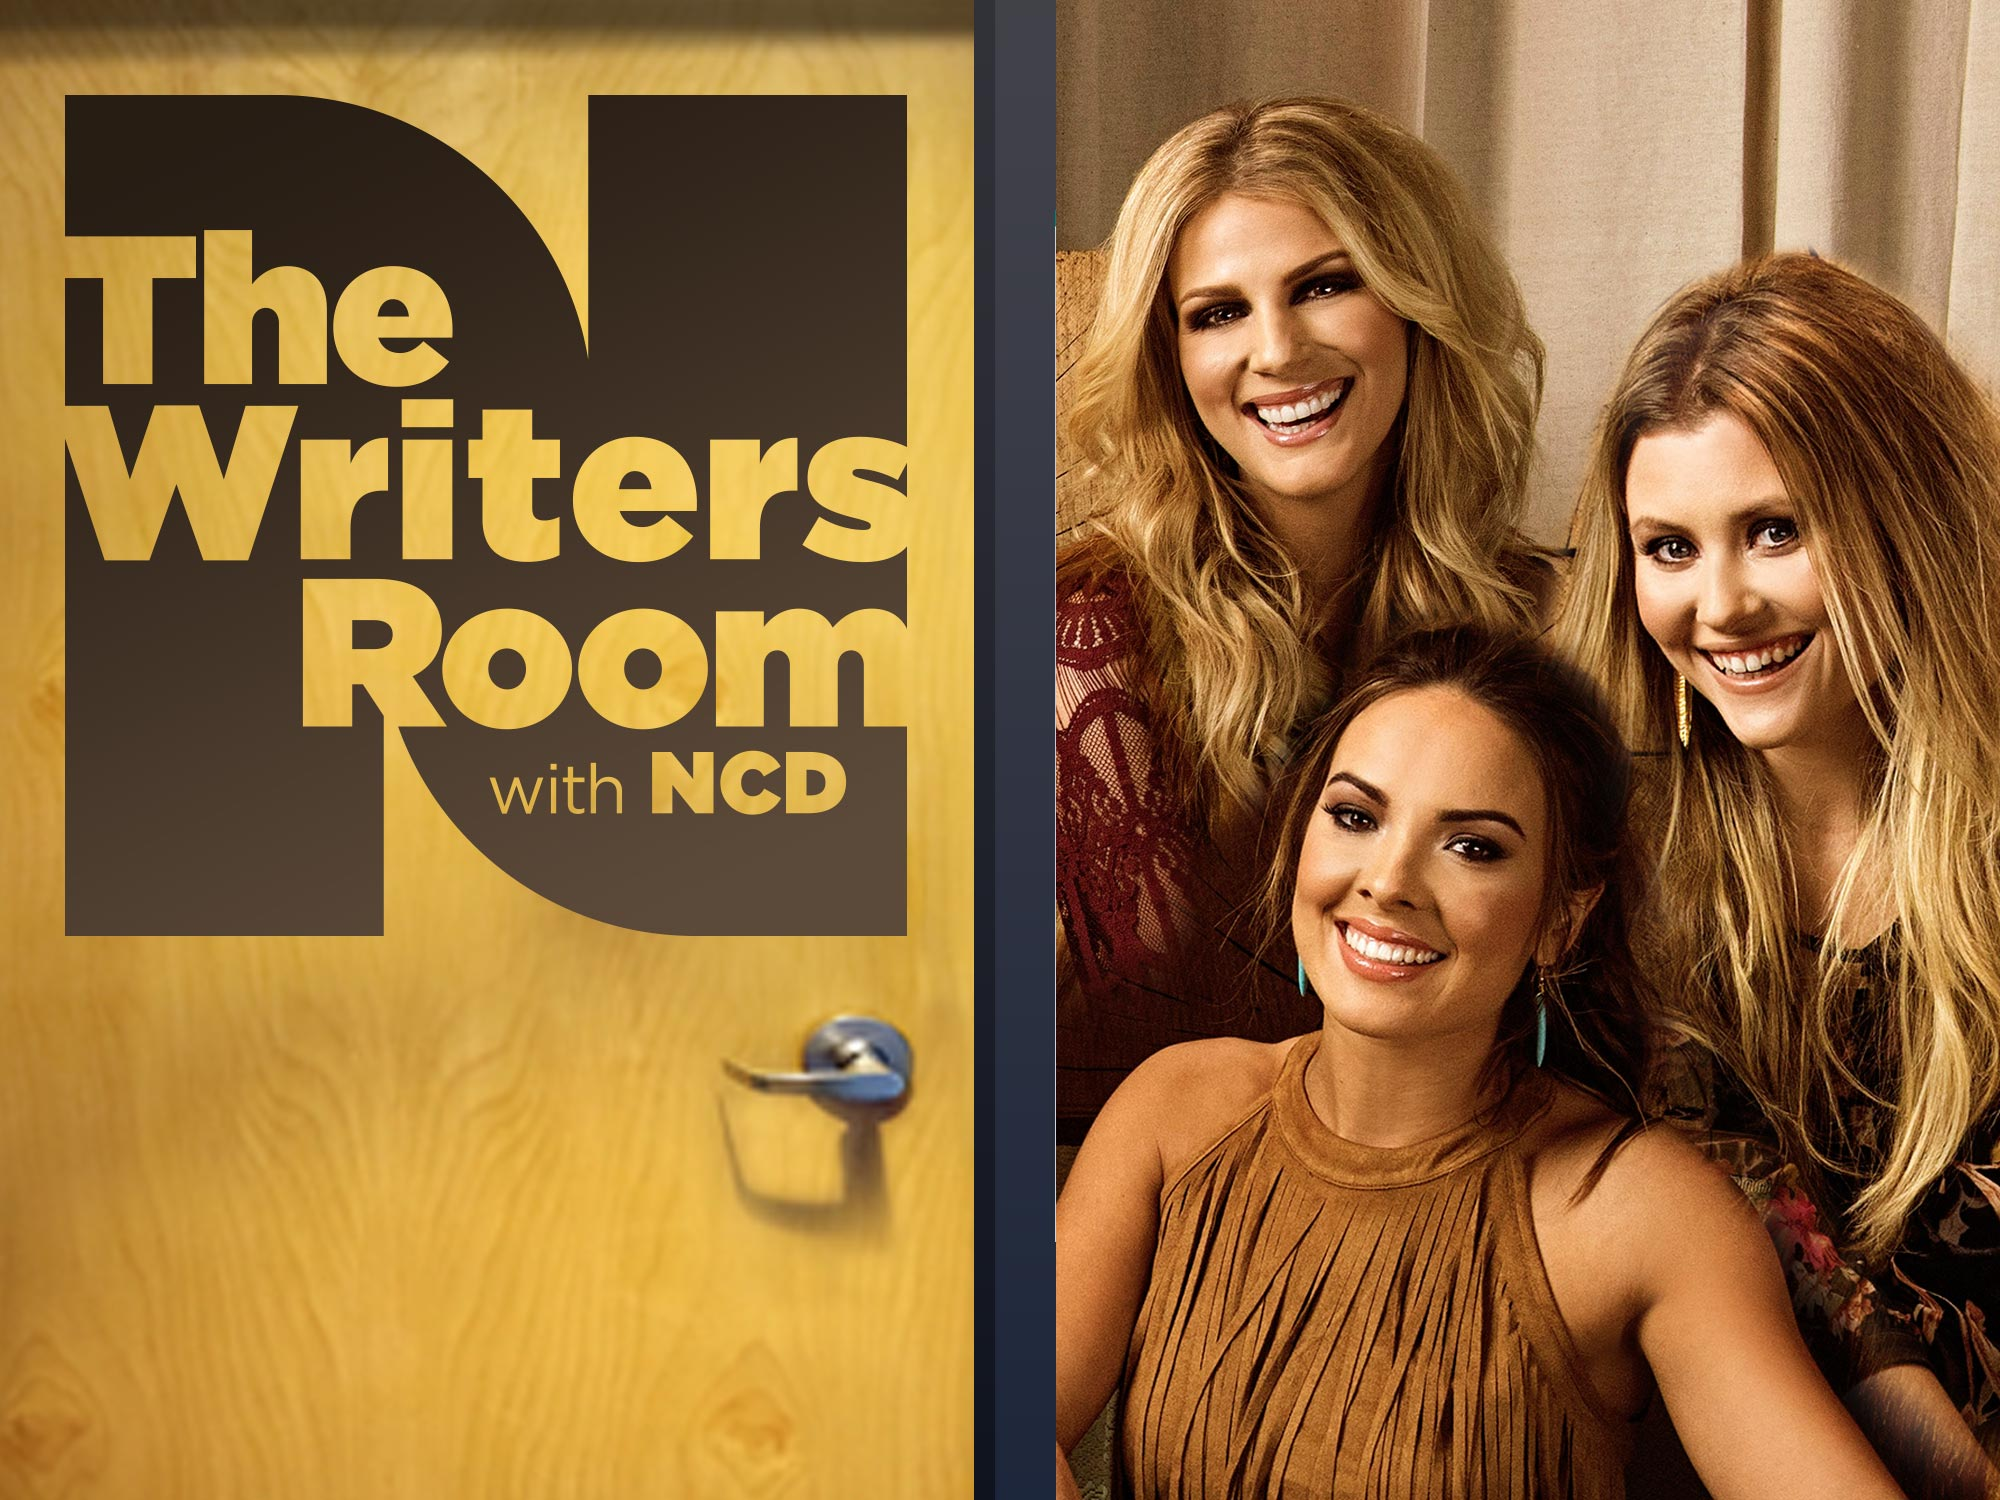 Runaway June Talks Reality TV, Family, Dixie Chicks and Other Musical Influences